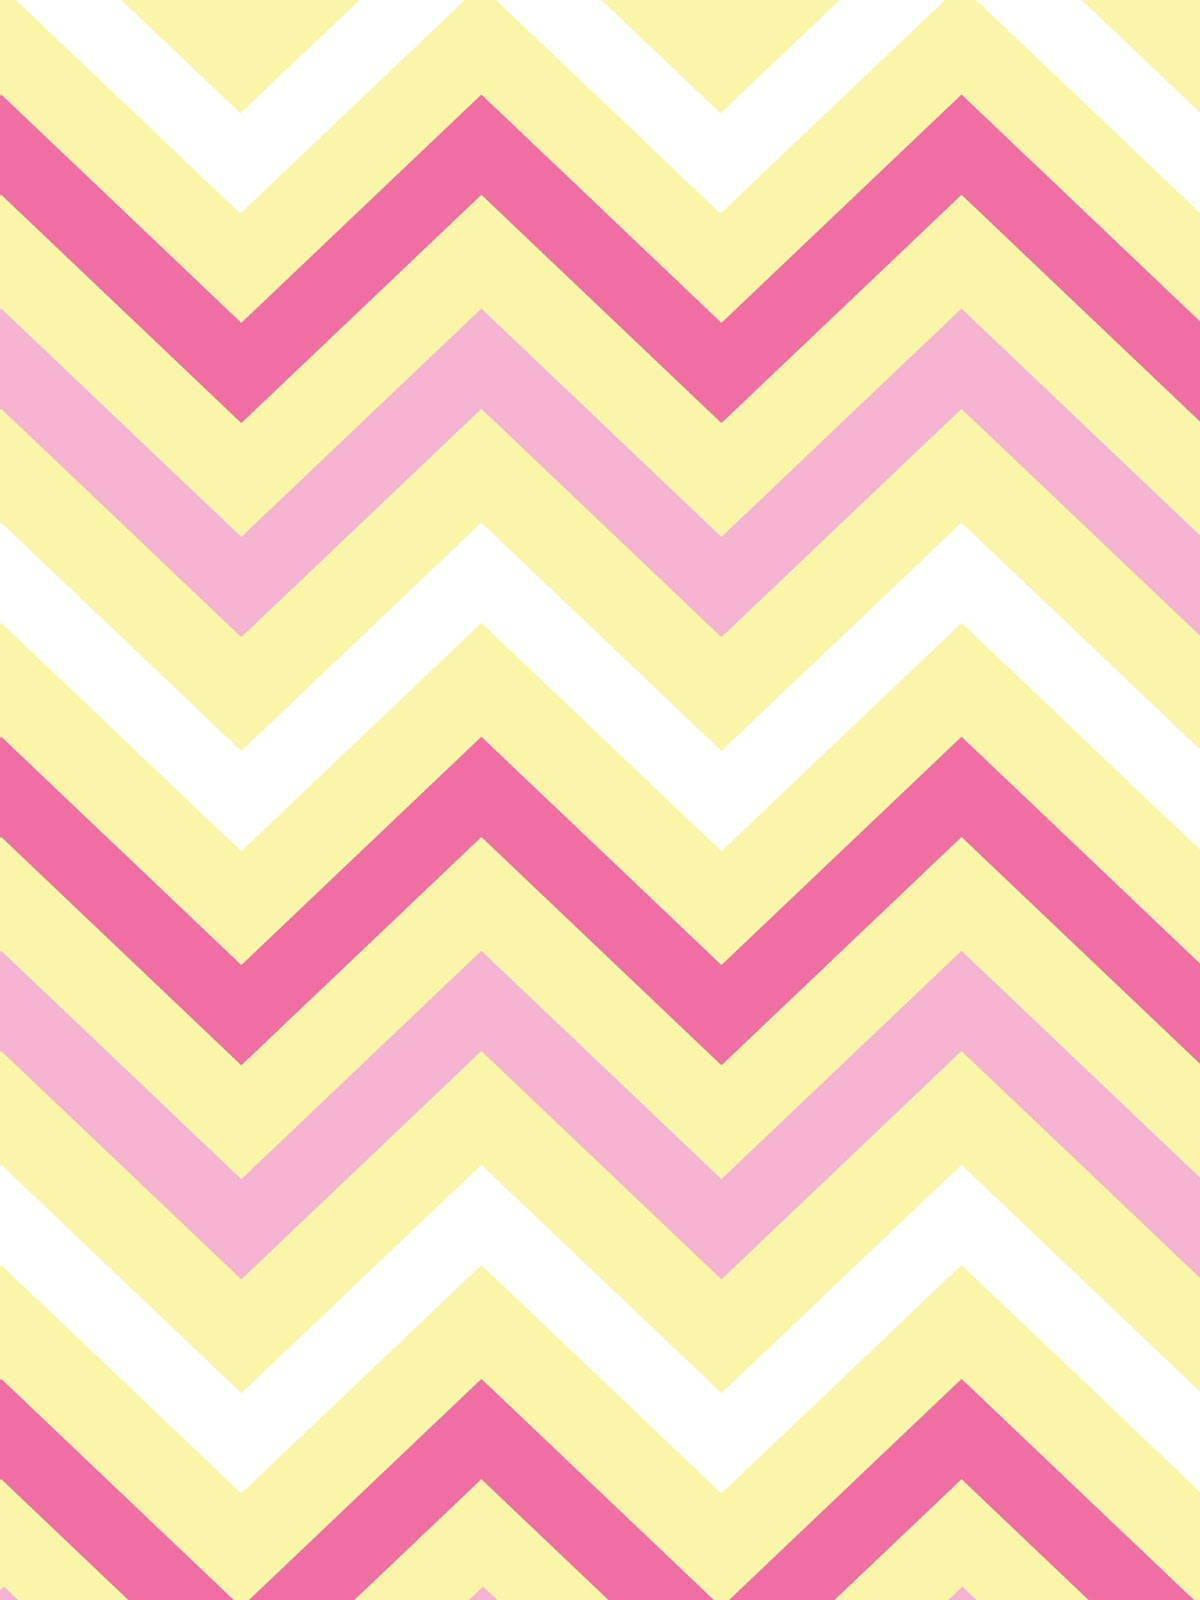 BackgroundsWallpapers ChevronSummery Pink Yellow Sand 1200x1600